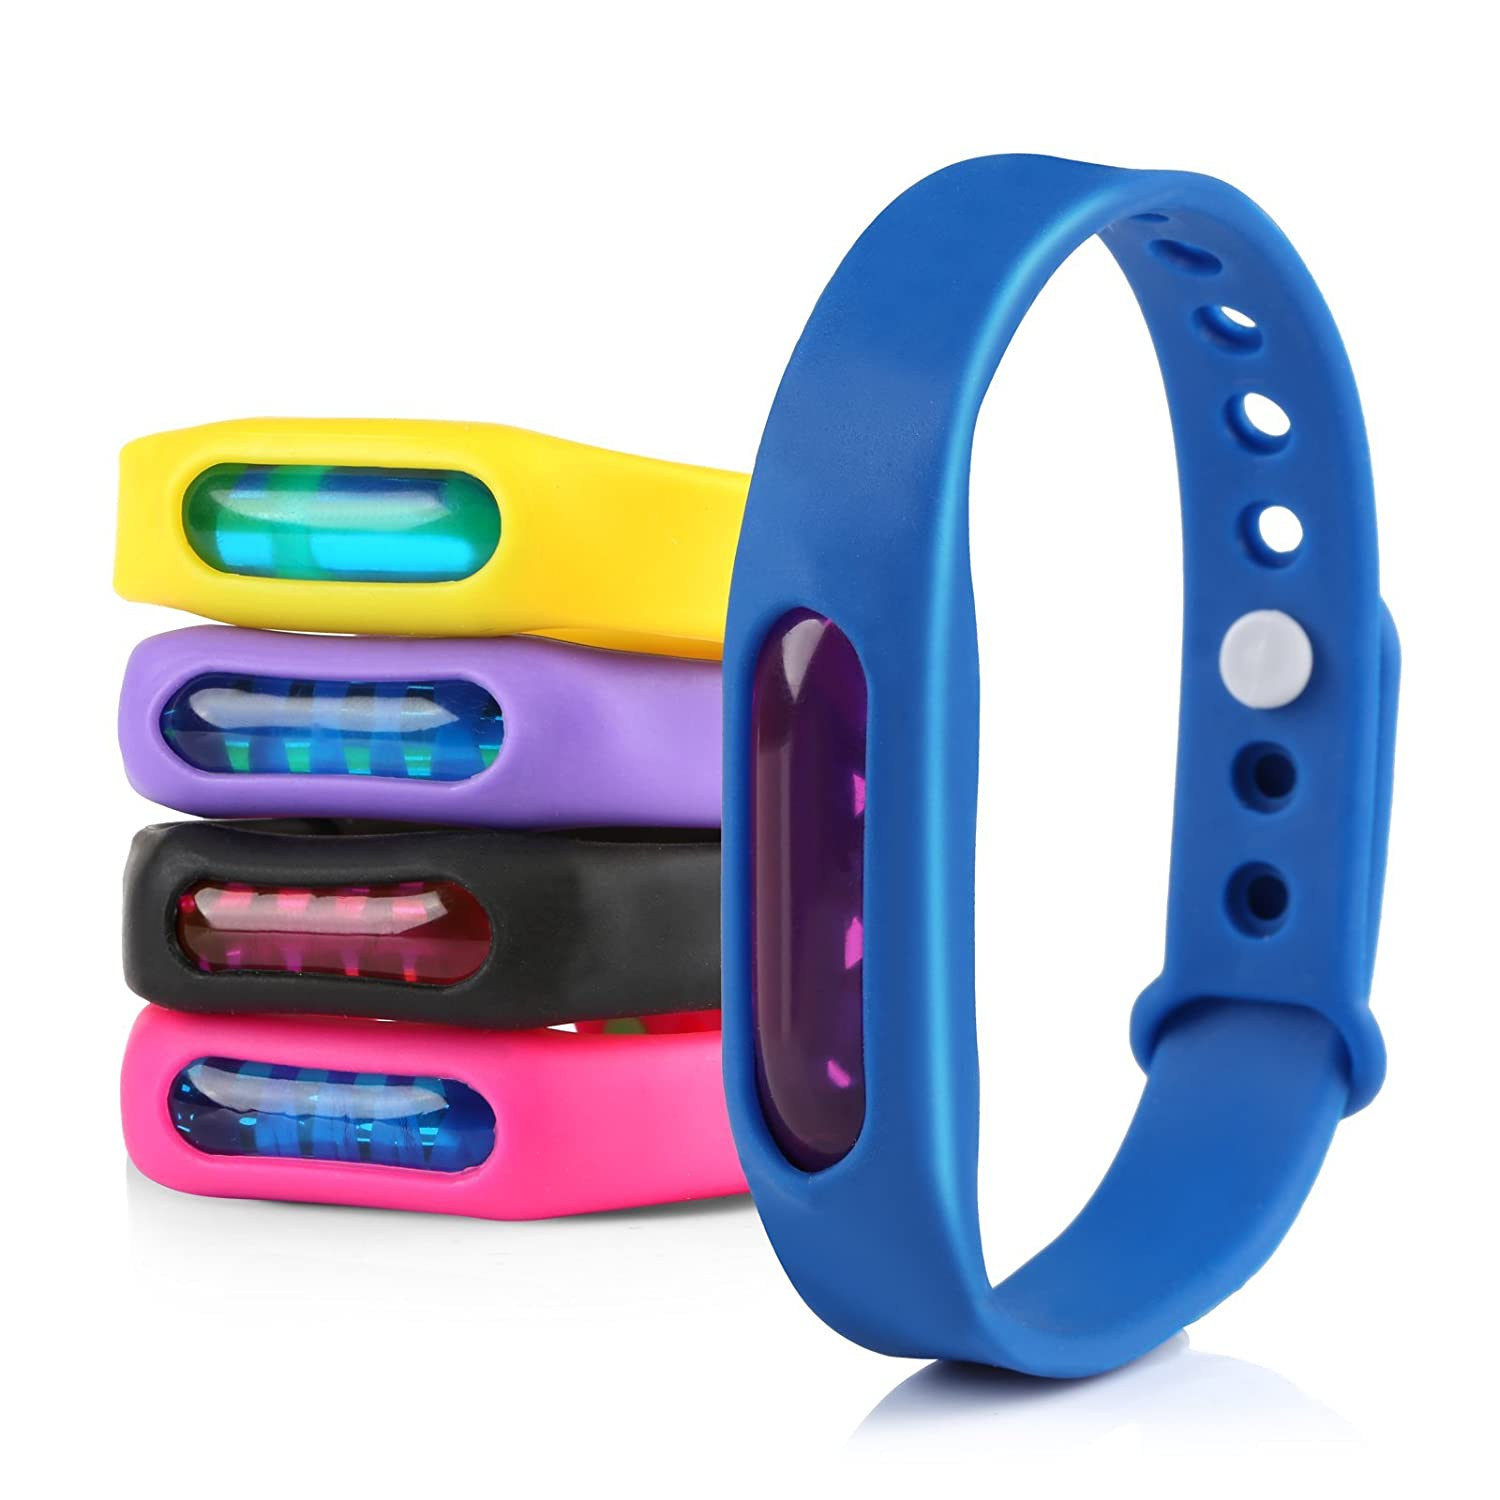 GWHOLE 5 Pack Mosquito Repellent Bracelets Waterproof Travel Insect Repellent All Natural DEET Free Anti Insect Bands